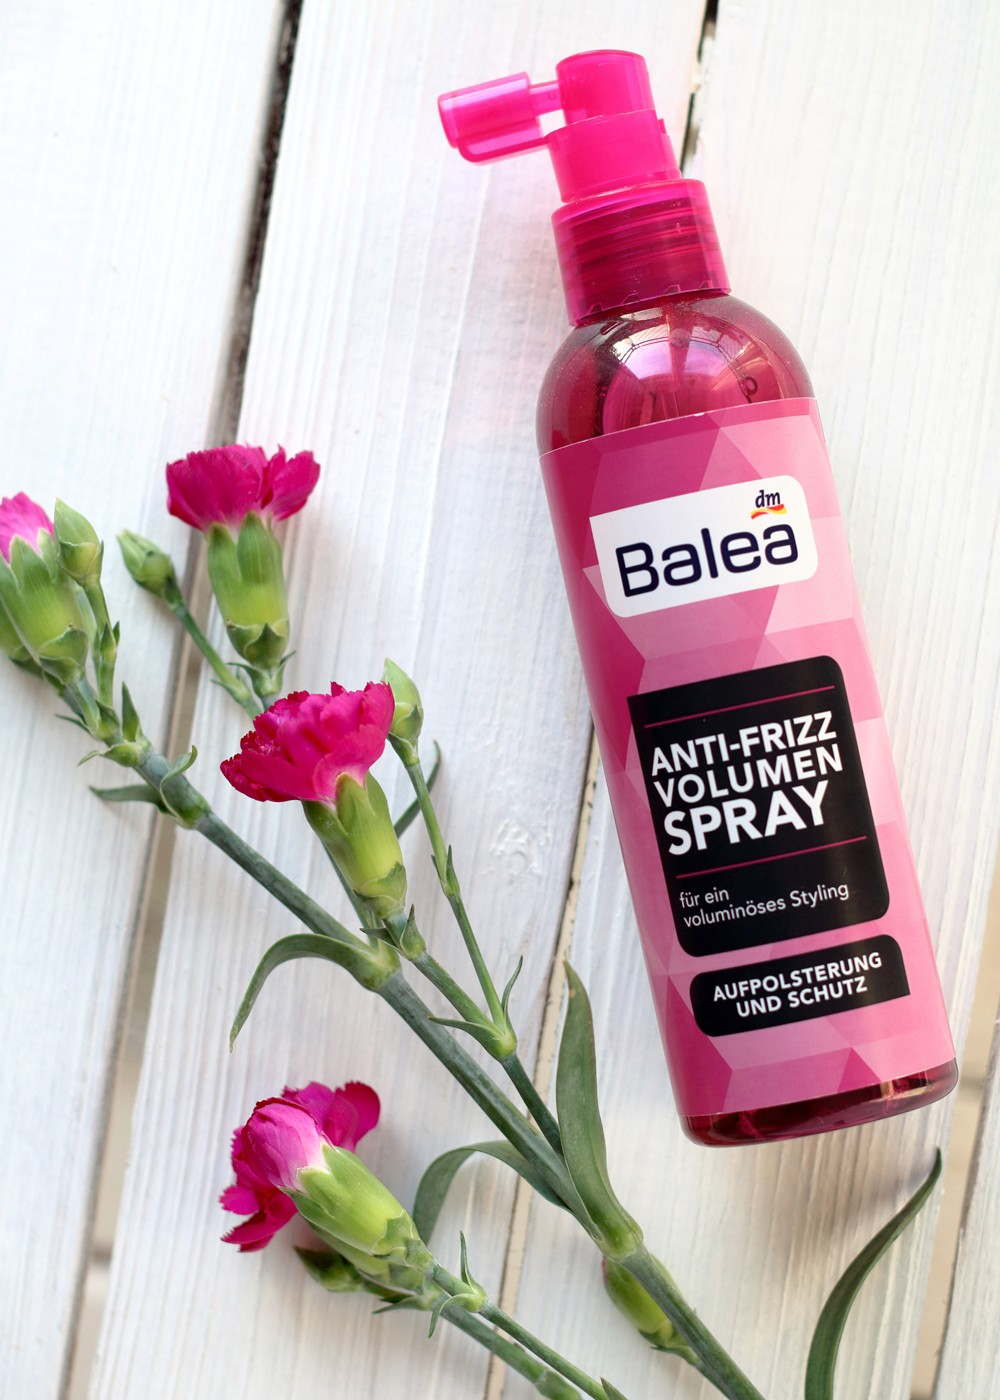 Balea Haarprofis Anti Frizz Volumenspray